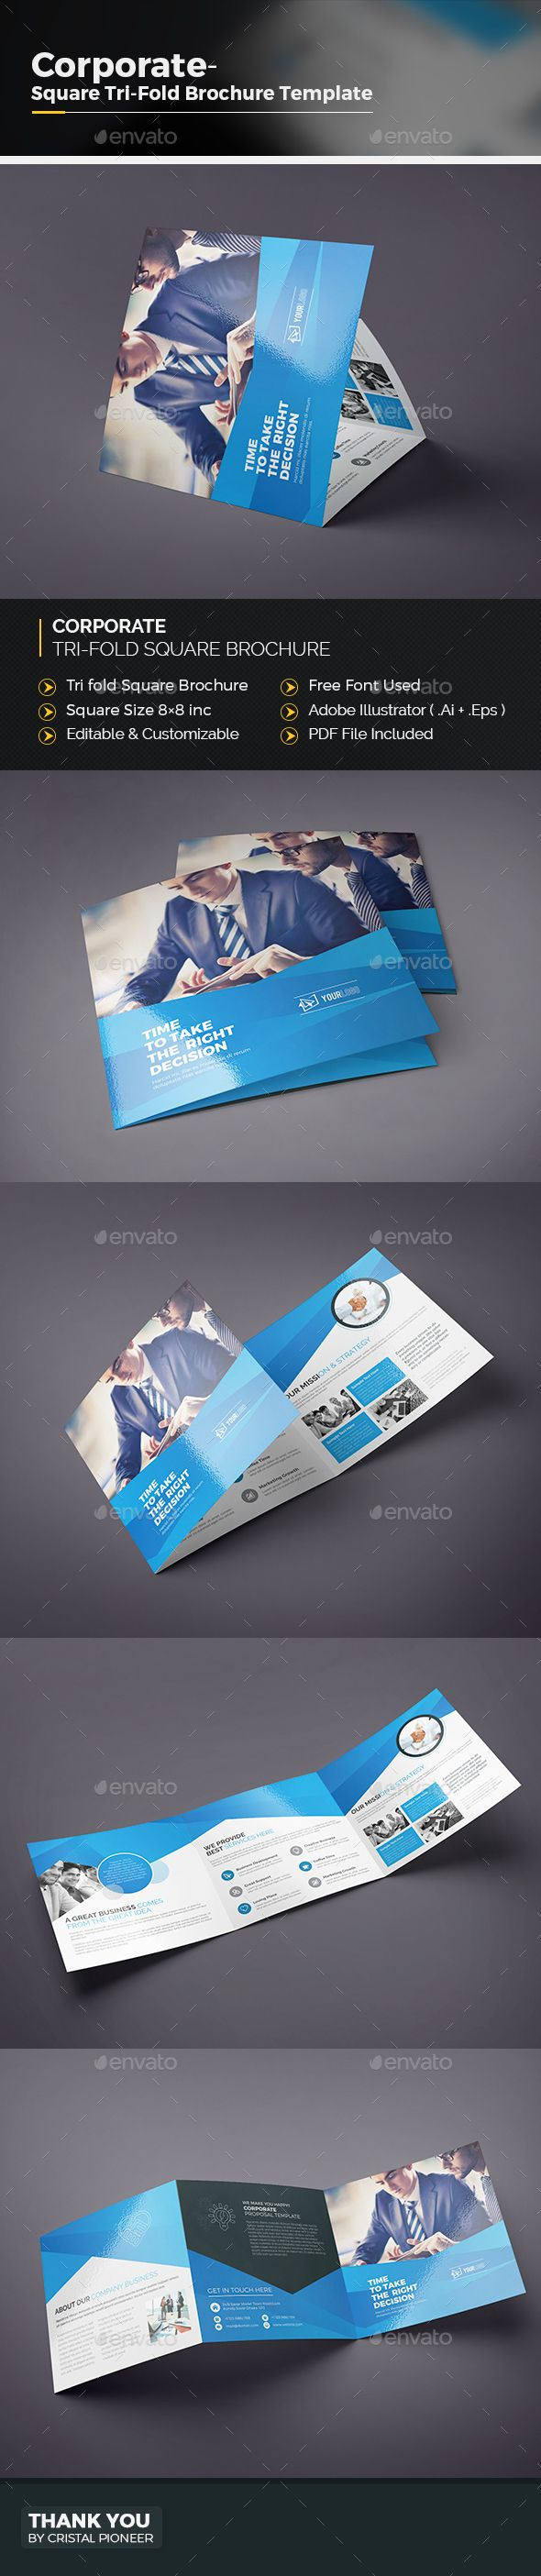 56 best square tri fold brochure images on pinterest | text color, Powerpoint templates